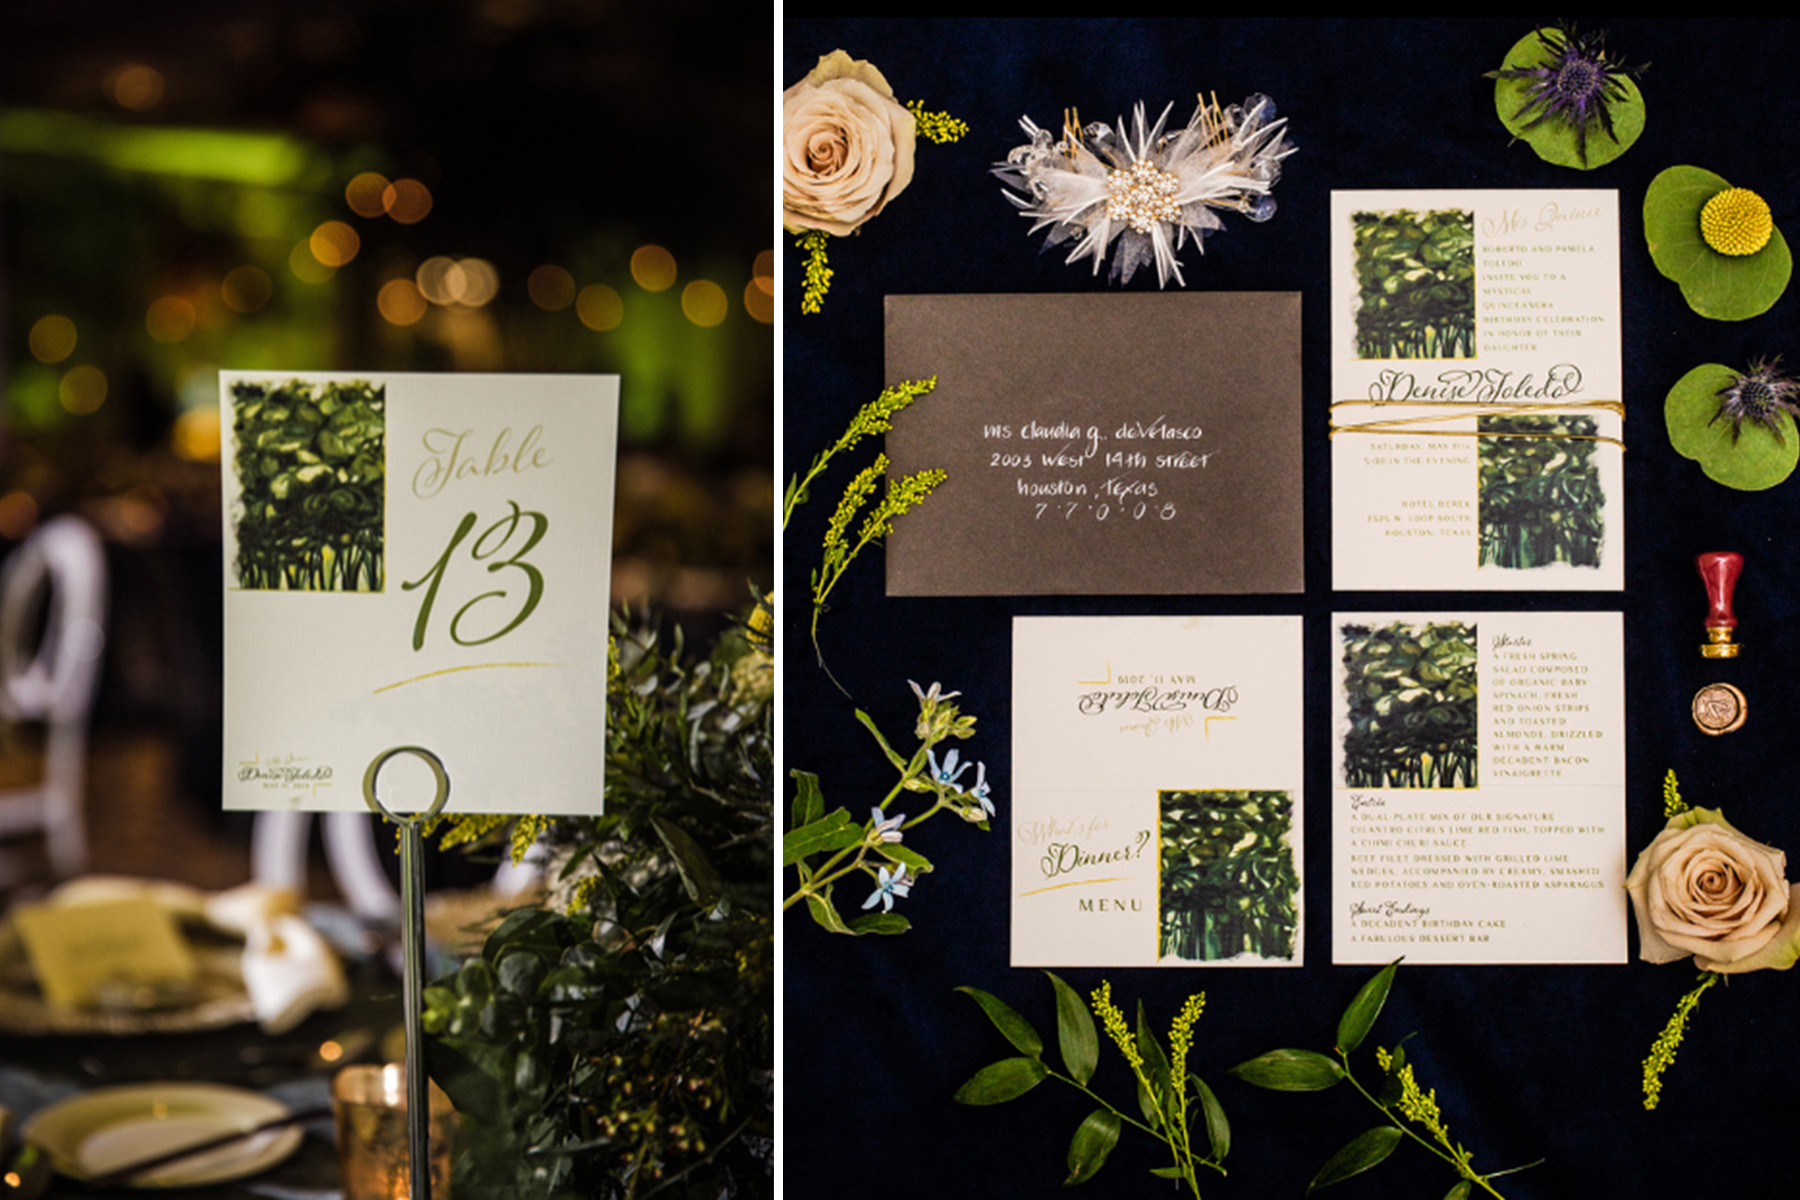 daytoremember.net | Blanca Duran Photography | Wedding Stationery | A Day To Remember Houston Wedding Planning and Design